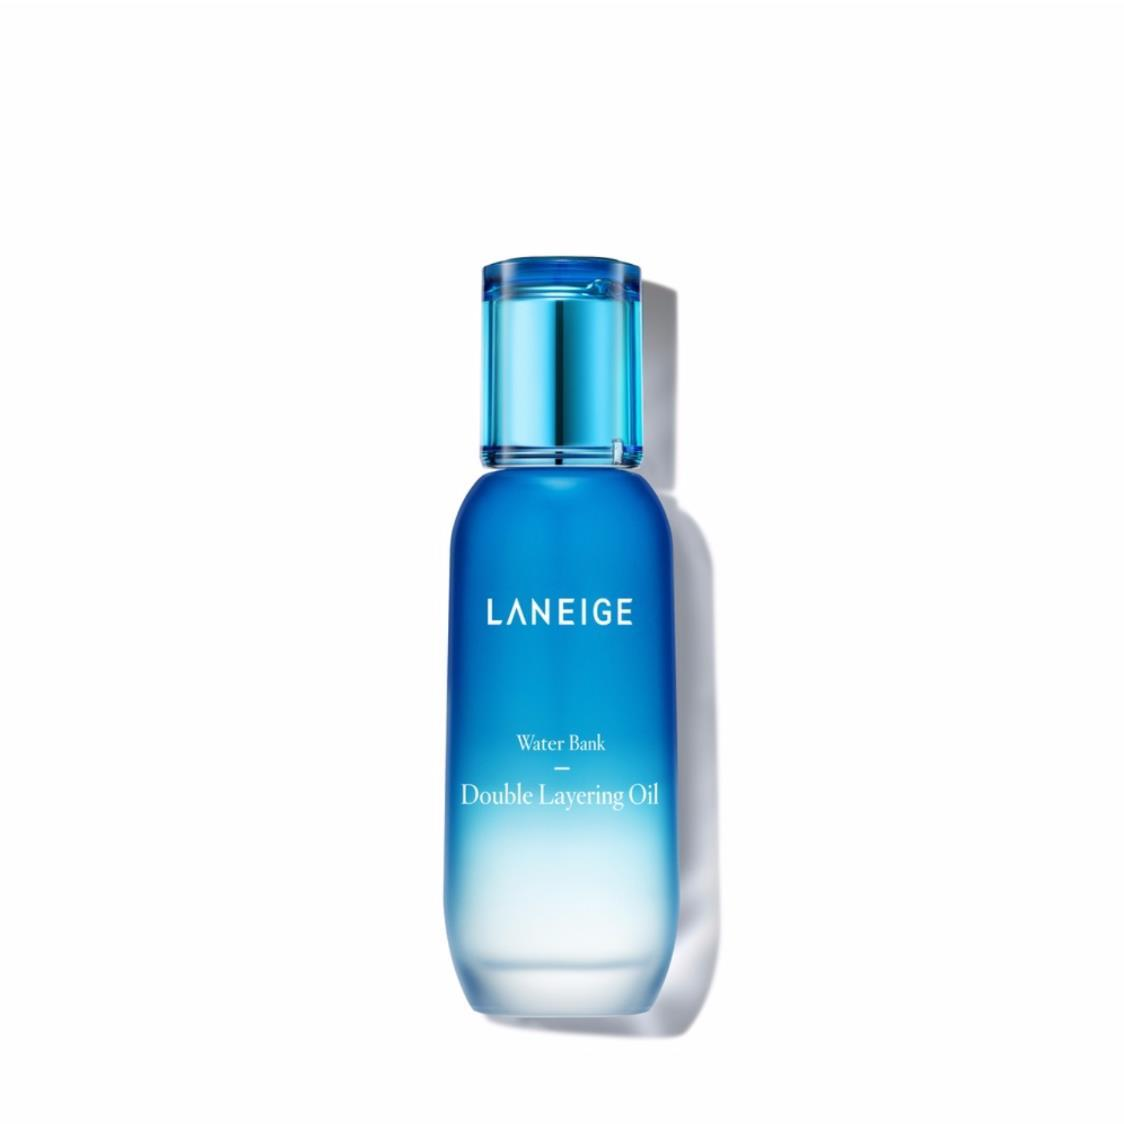 Water Bank Double Layering Oil 50ml